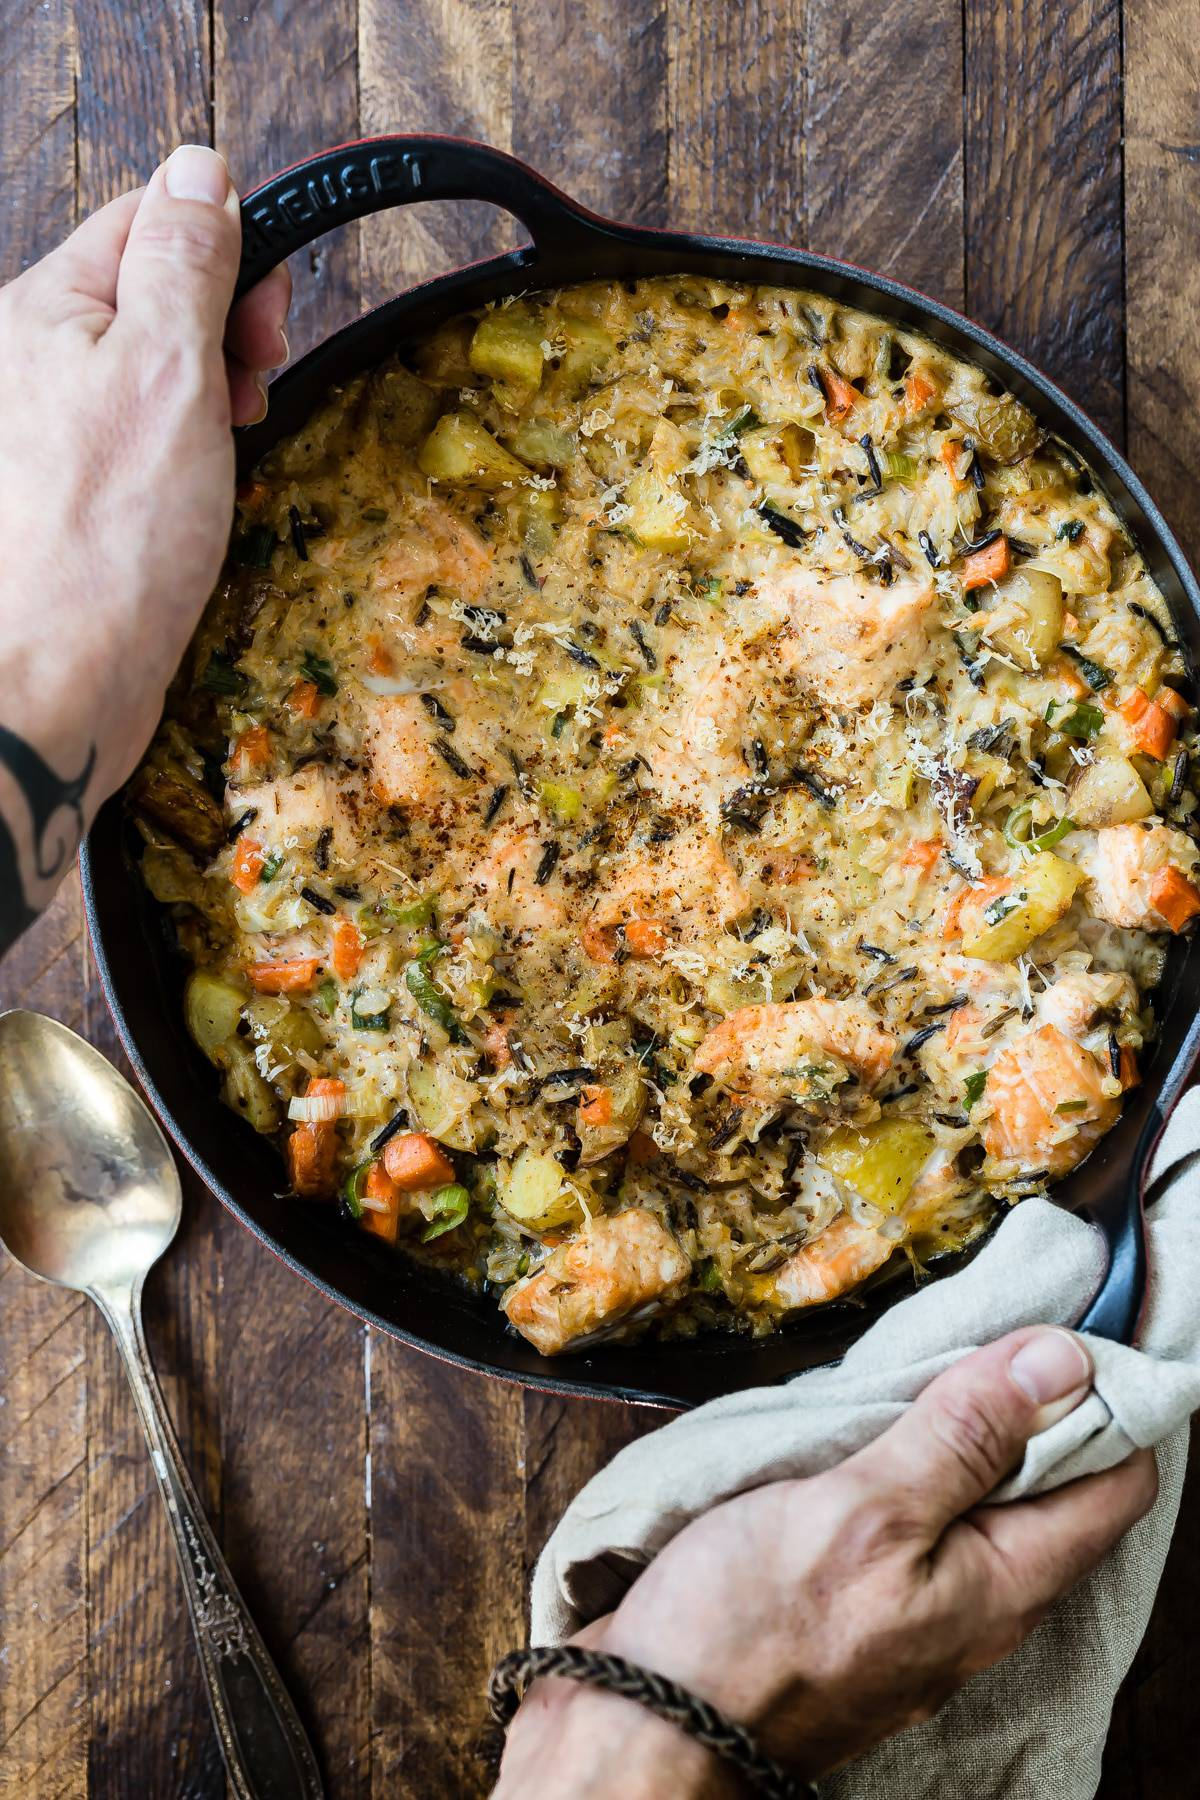 Baked Salmon and Wild Rice Casserole